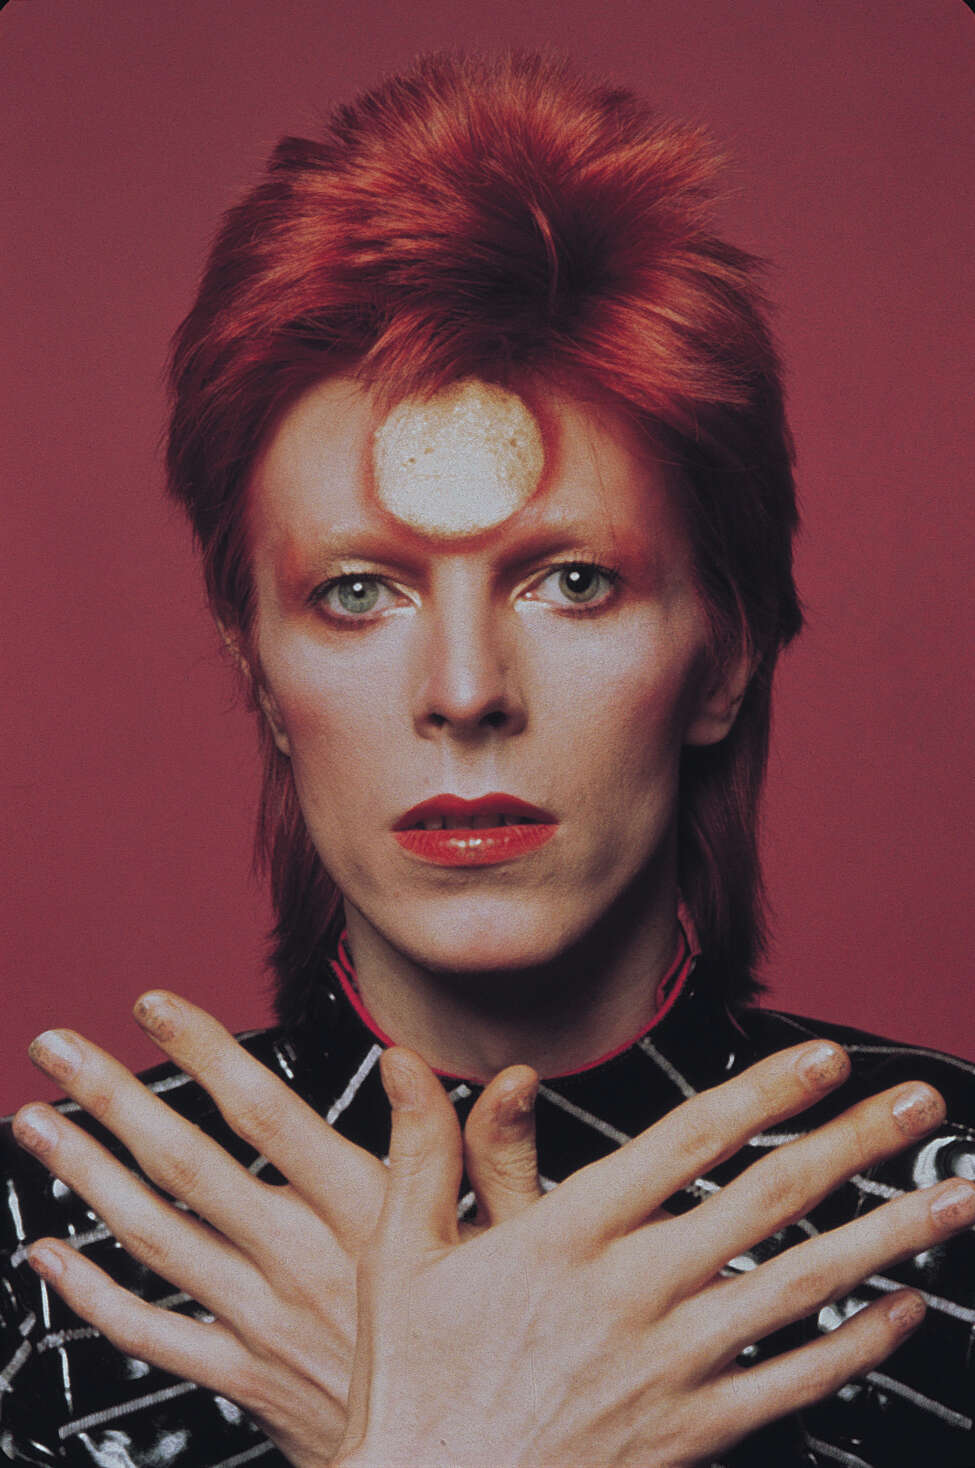 Celebrate the life of David Bowie with tribute band, Bing Bamboo Room! When: February 21st, 7pm. Where: The Low Beat, 335 Central Ave, Albany. Click here for more information!